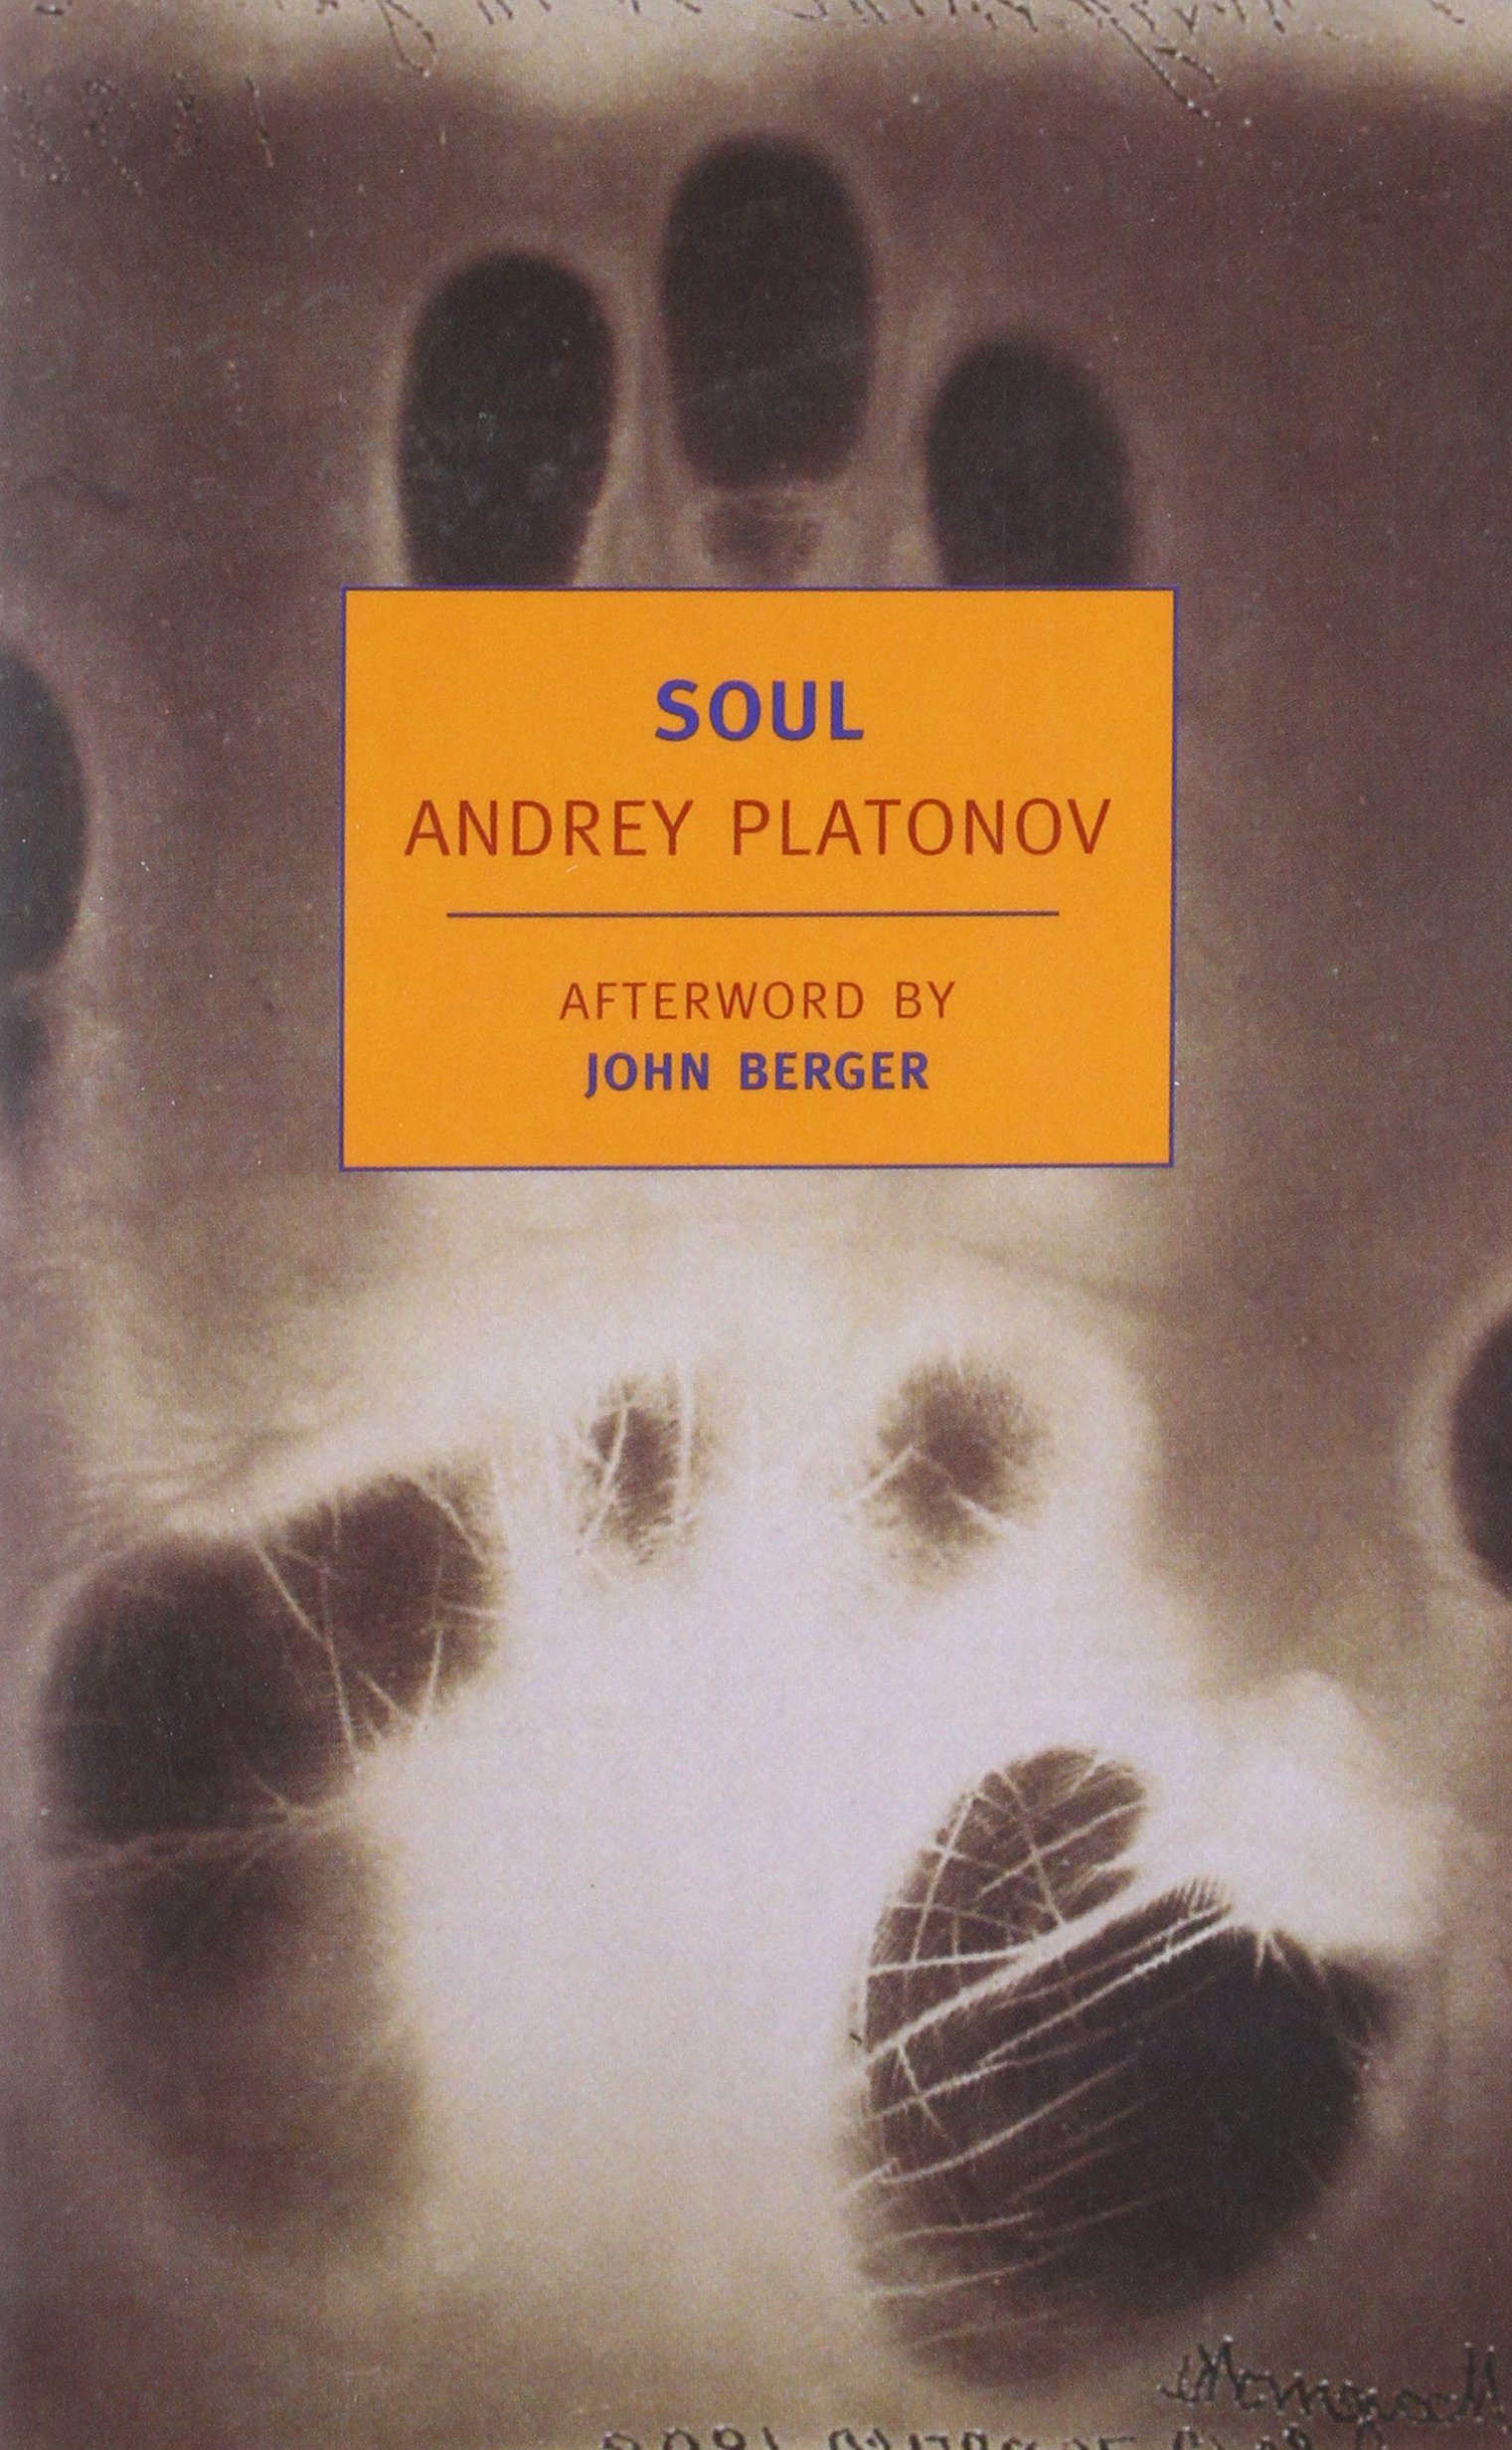 Soul and other stories new york review books classics andrey soul and other stories new york review books classics andrey platonov robert chandler olga meerson john berger 9781590172544 amazon books fandeluxe Choice Image